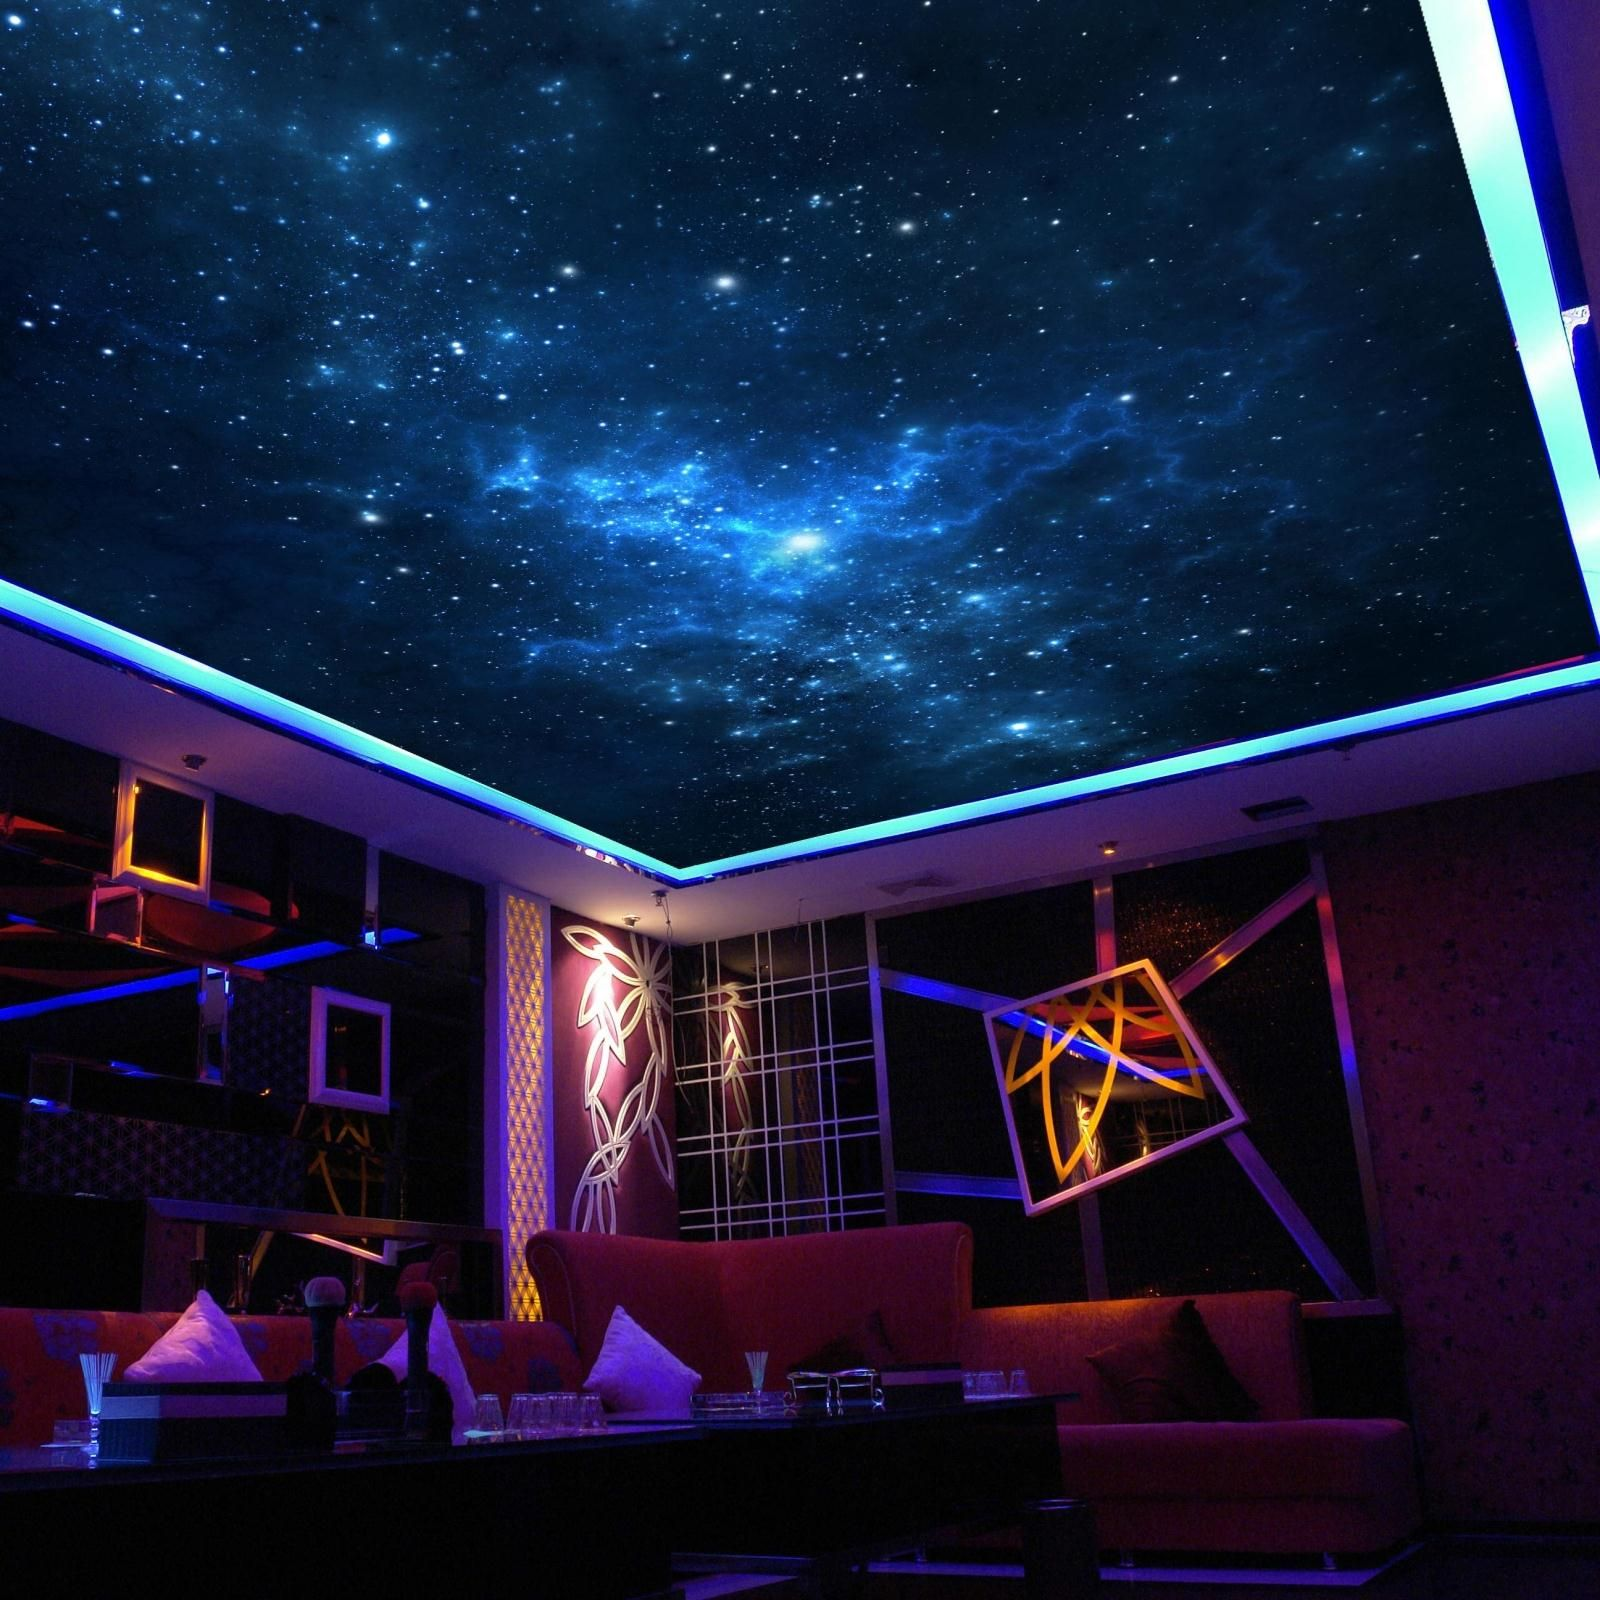 The Stars In The Night Sky Mural Wallpaper Ktv Ceiling Wallpaper Inwallpapers From Home Garden On Aliexpress Com Ceiling Murals Sky Ceiling Galaxy Bedroom